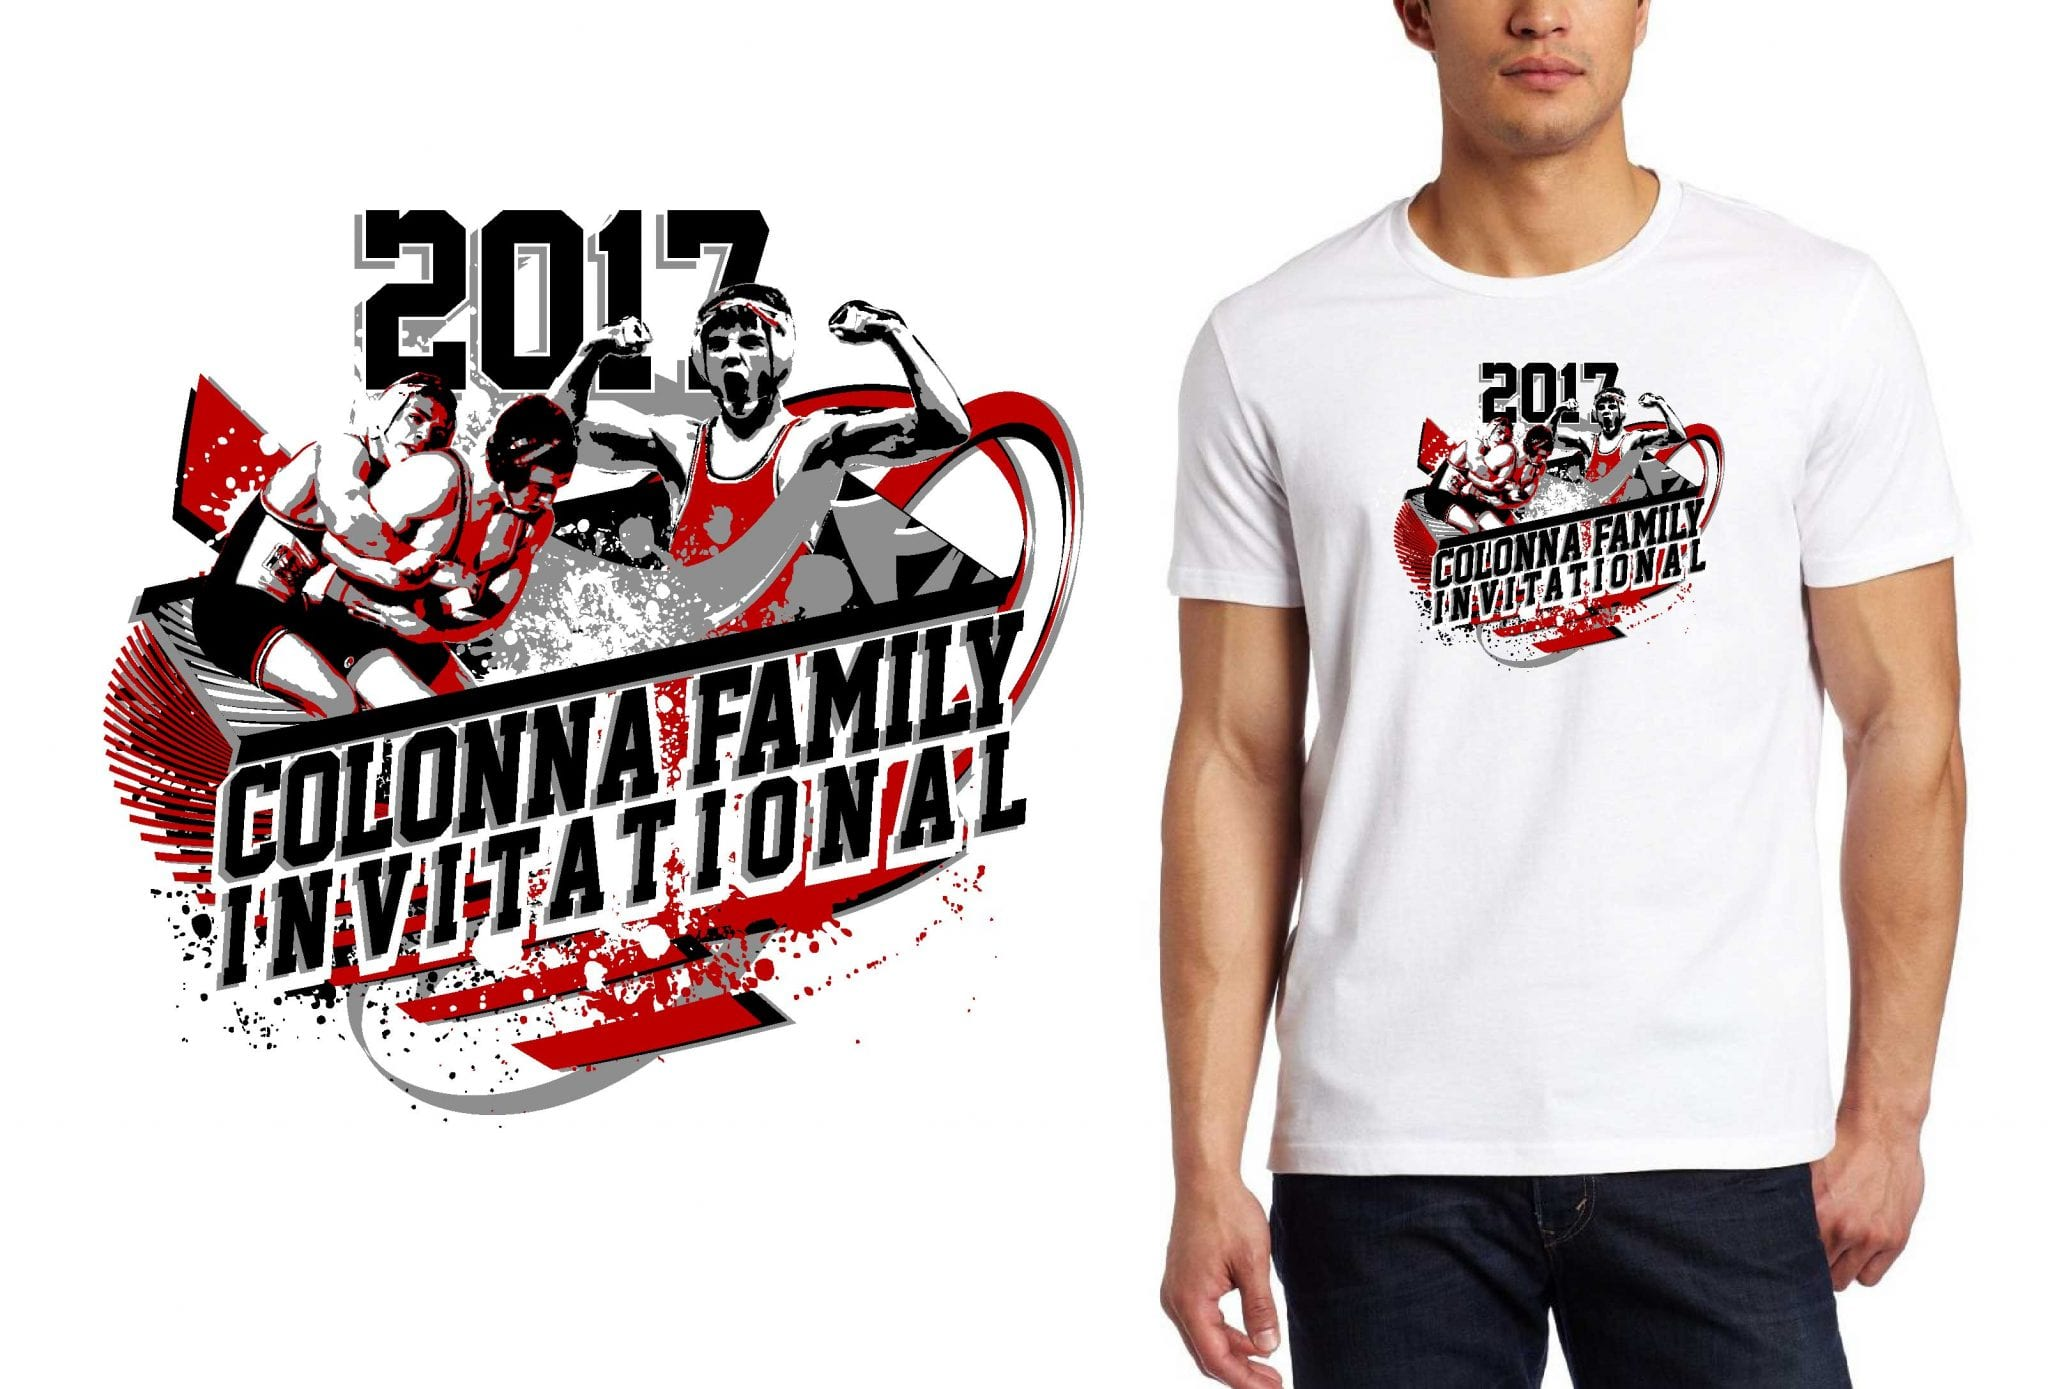 WRESTLING LOGO for Colonna-Family-Invitational T-SHIRT UrArtStudio